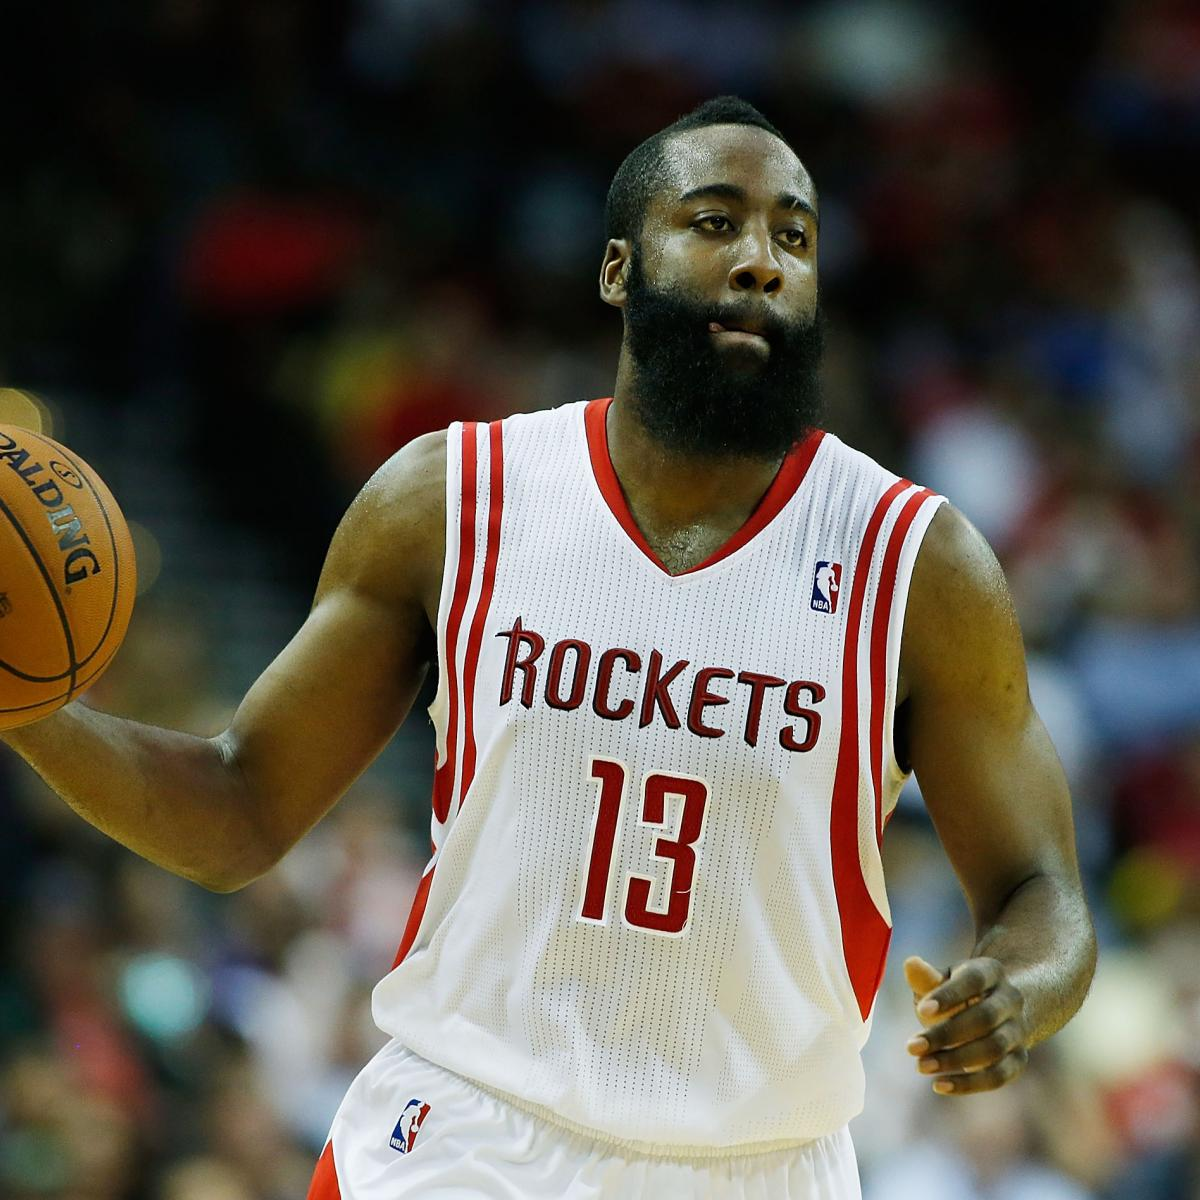 Houston Rockets Championship Roster: Houston Rockets Training Camp 2013: Roster Projections And